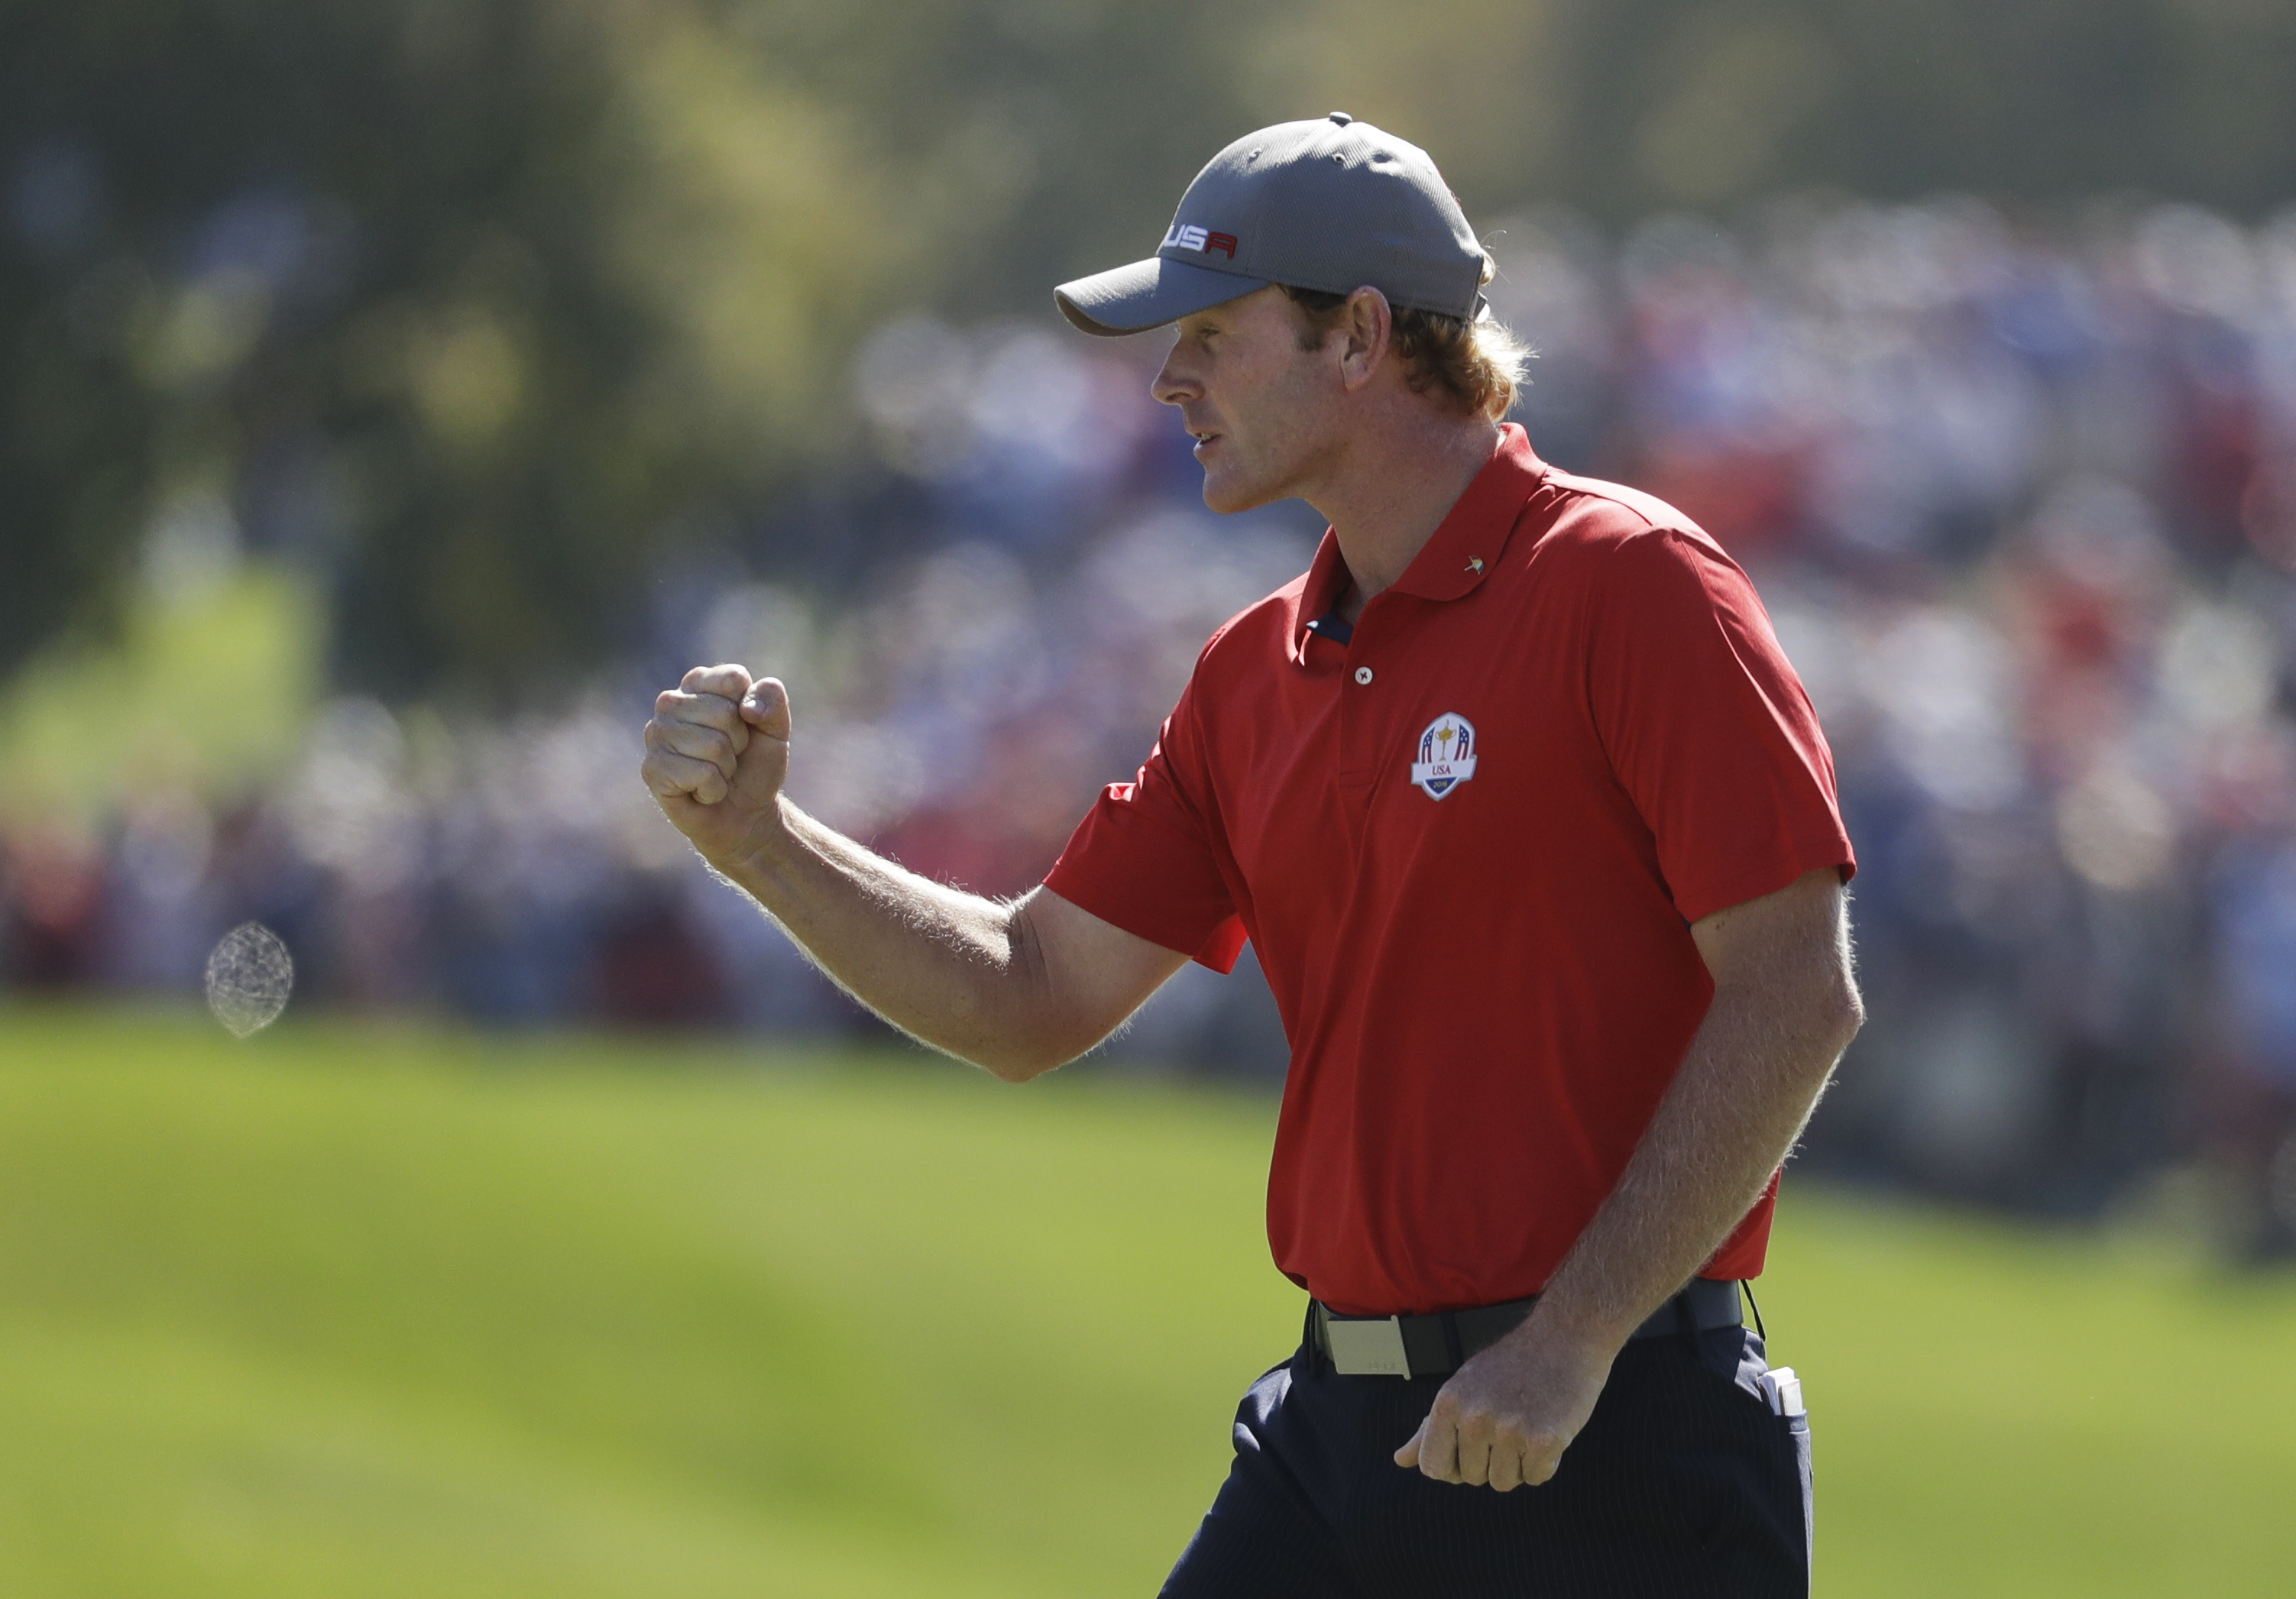 United States Brandt Snedeker reacts after making a birdie putt on the second hole during a four-balls match at the Ryder Cup golf tournament Friday, Sept. 30, 2016, at Hazeltine National Golf Club in Chaska, Minn. (AP Photo/Chris Carlson)